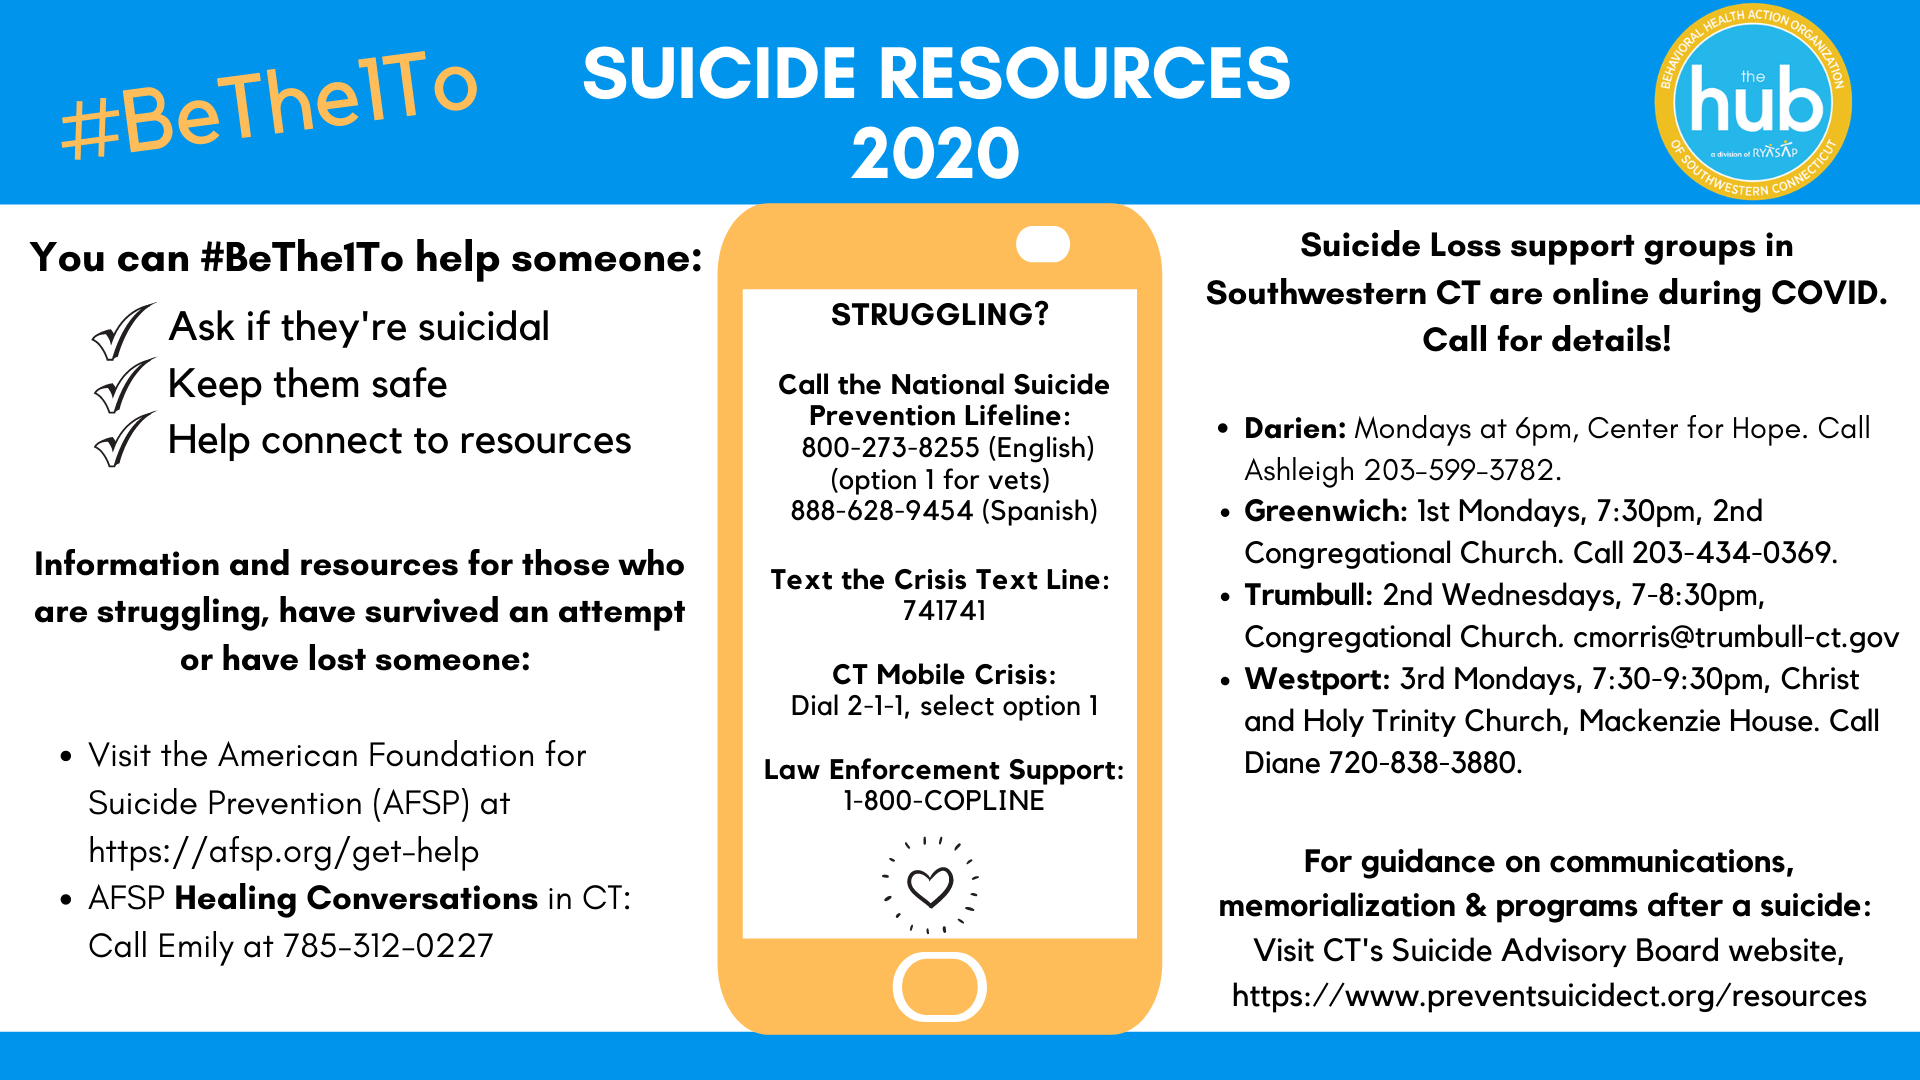 Suicide Resources 2020